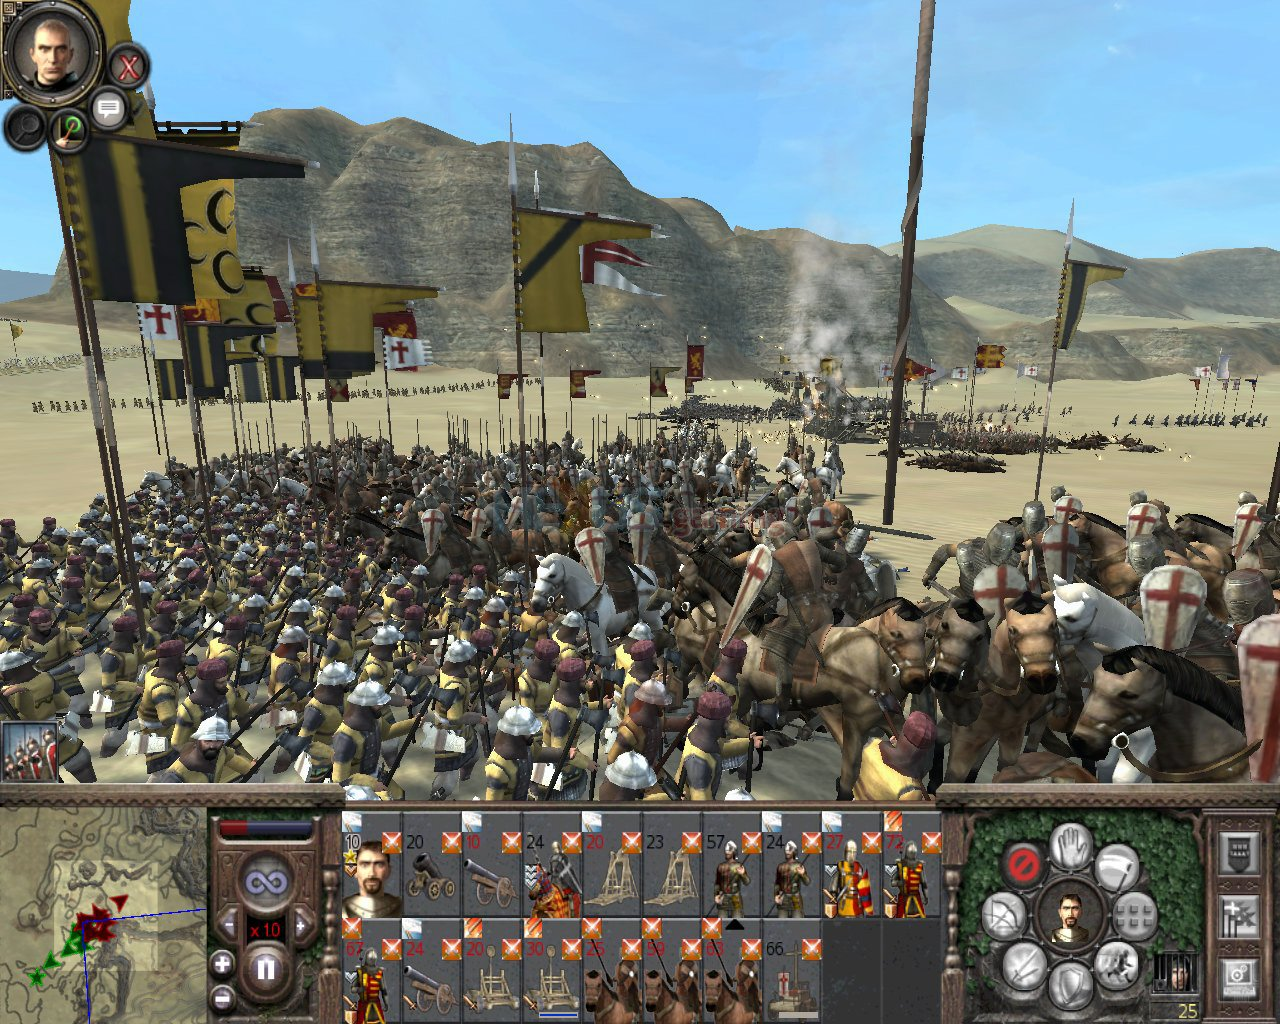 Medieval 2 : Total War : New screenshots - PC - News - HEXUS net